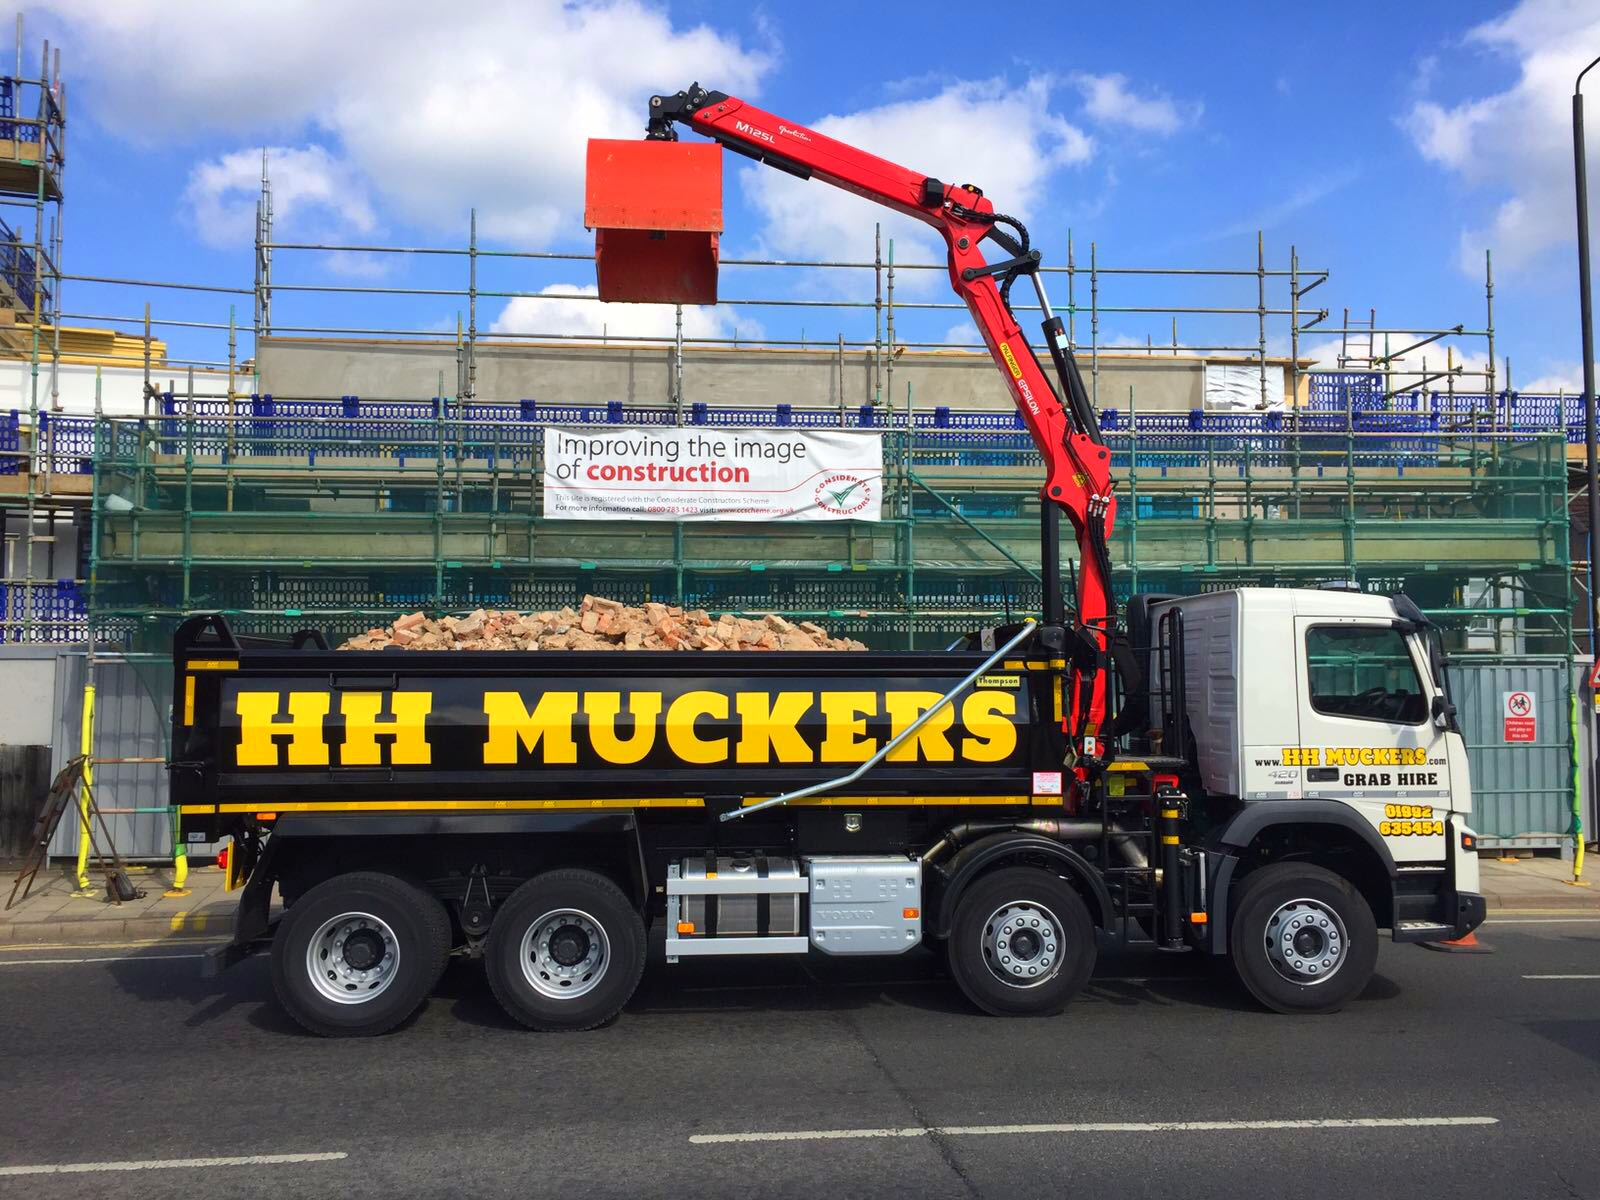 HH-Muckers-Grab-Hire-Lorry-2017-Construction